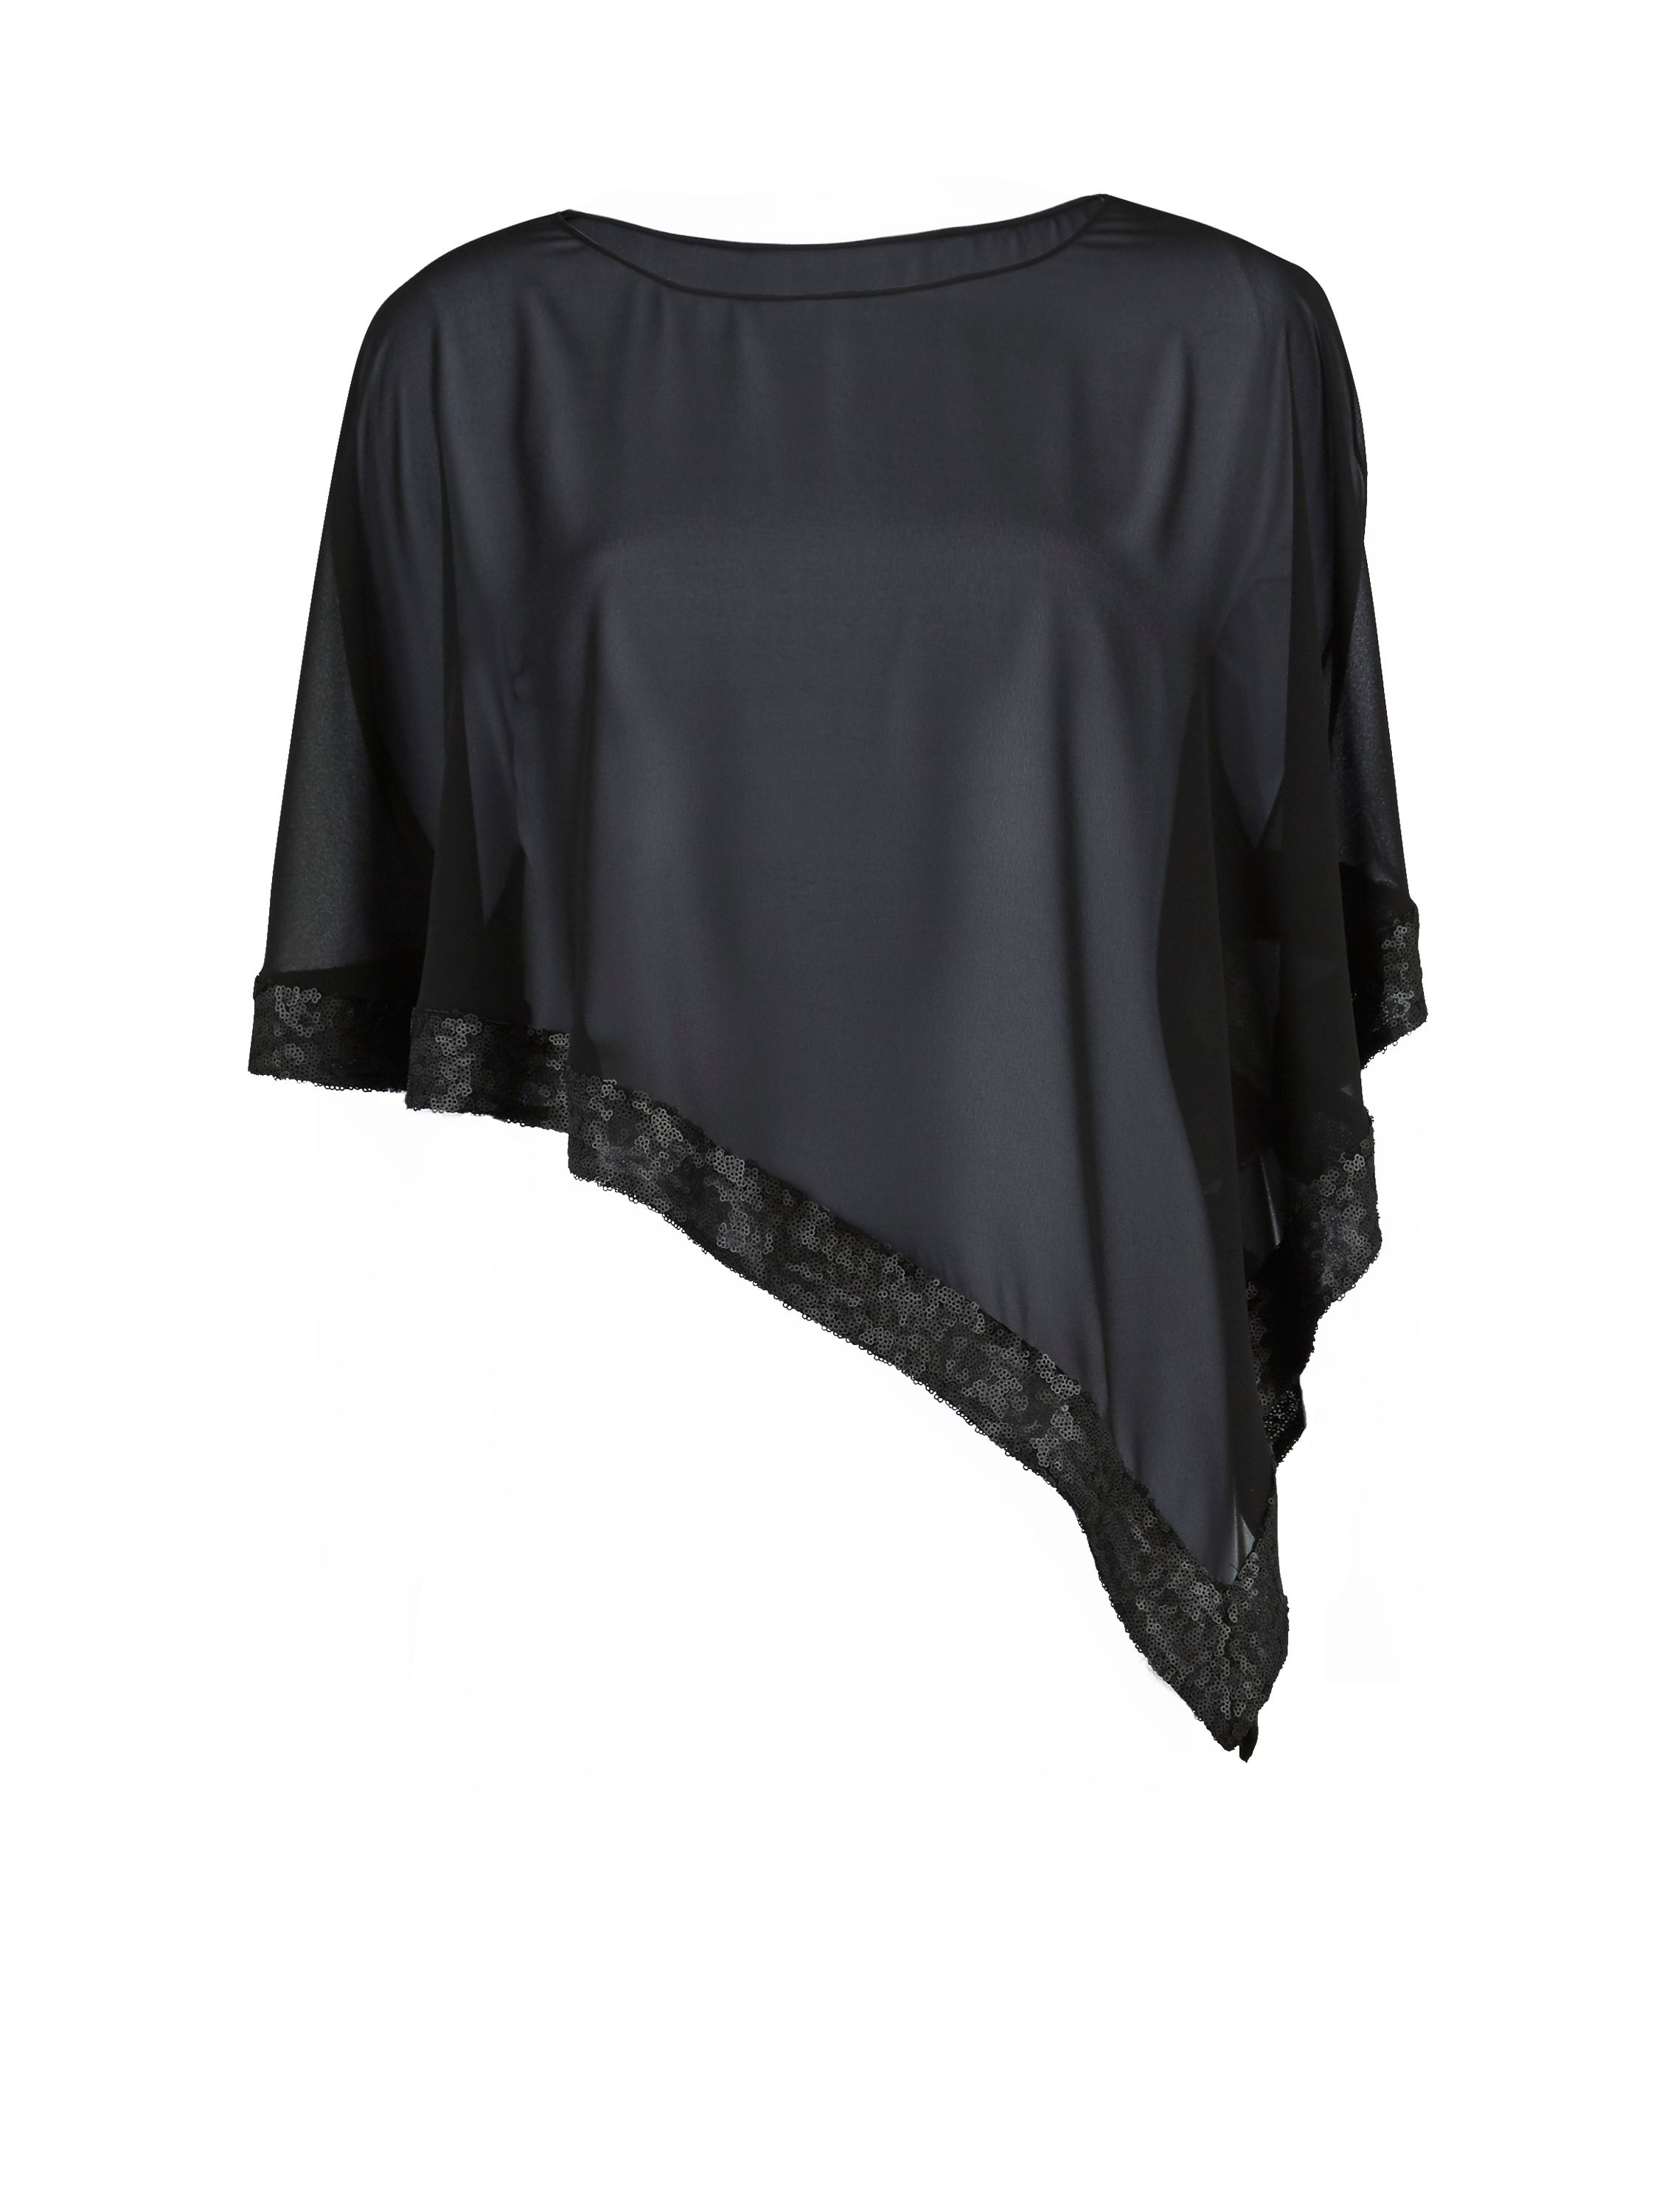 Gina Bacconi Chiffon cape with sequin edge, Black